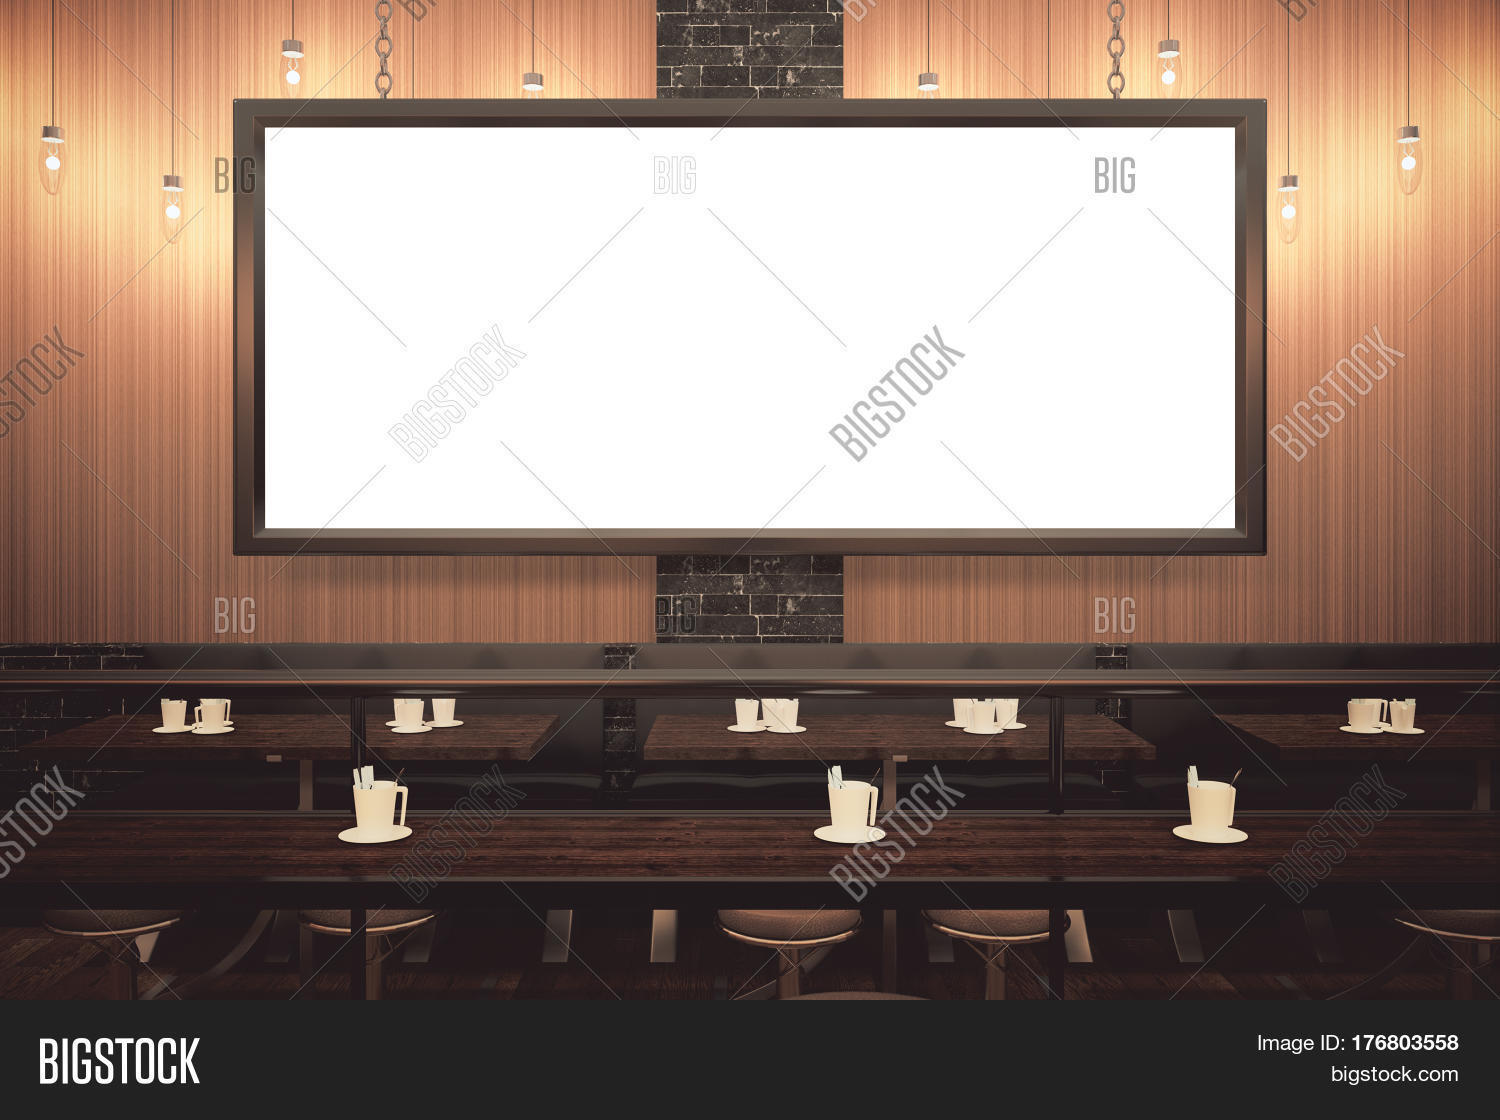 Wooden billboards for furniture: overview, views and recommendations 35